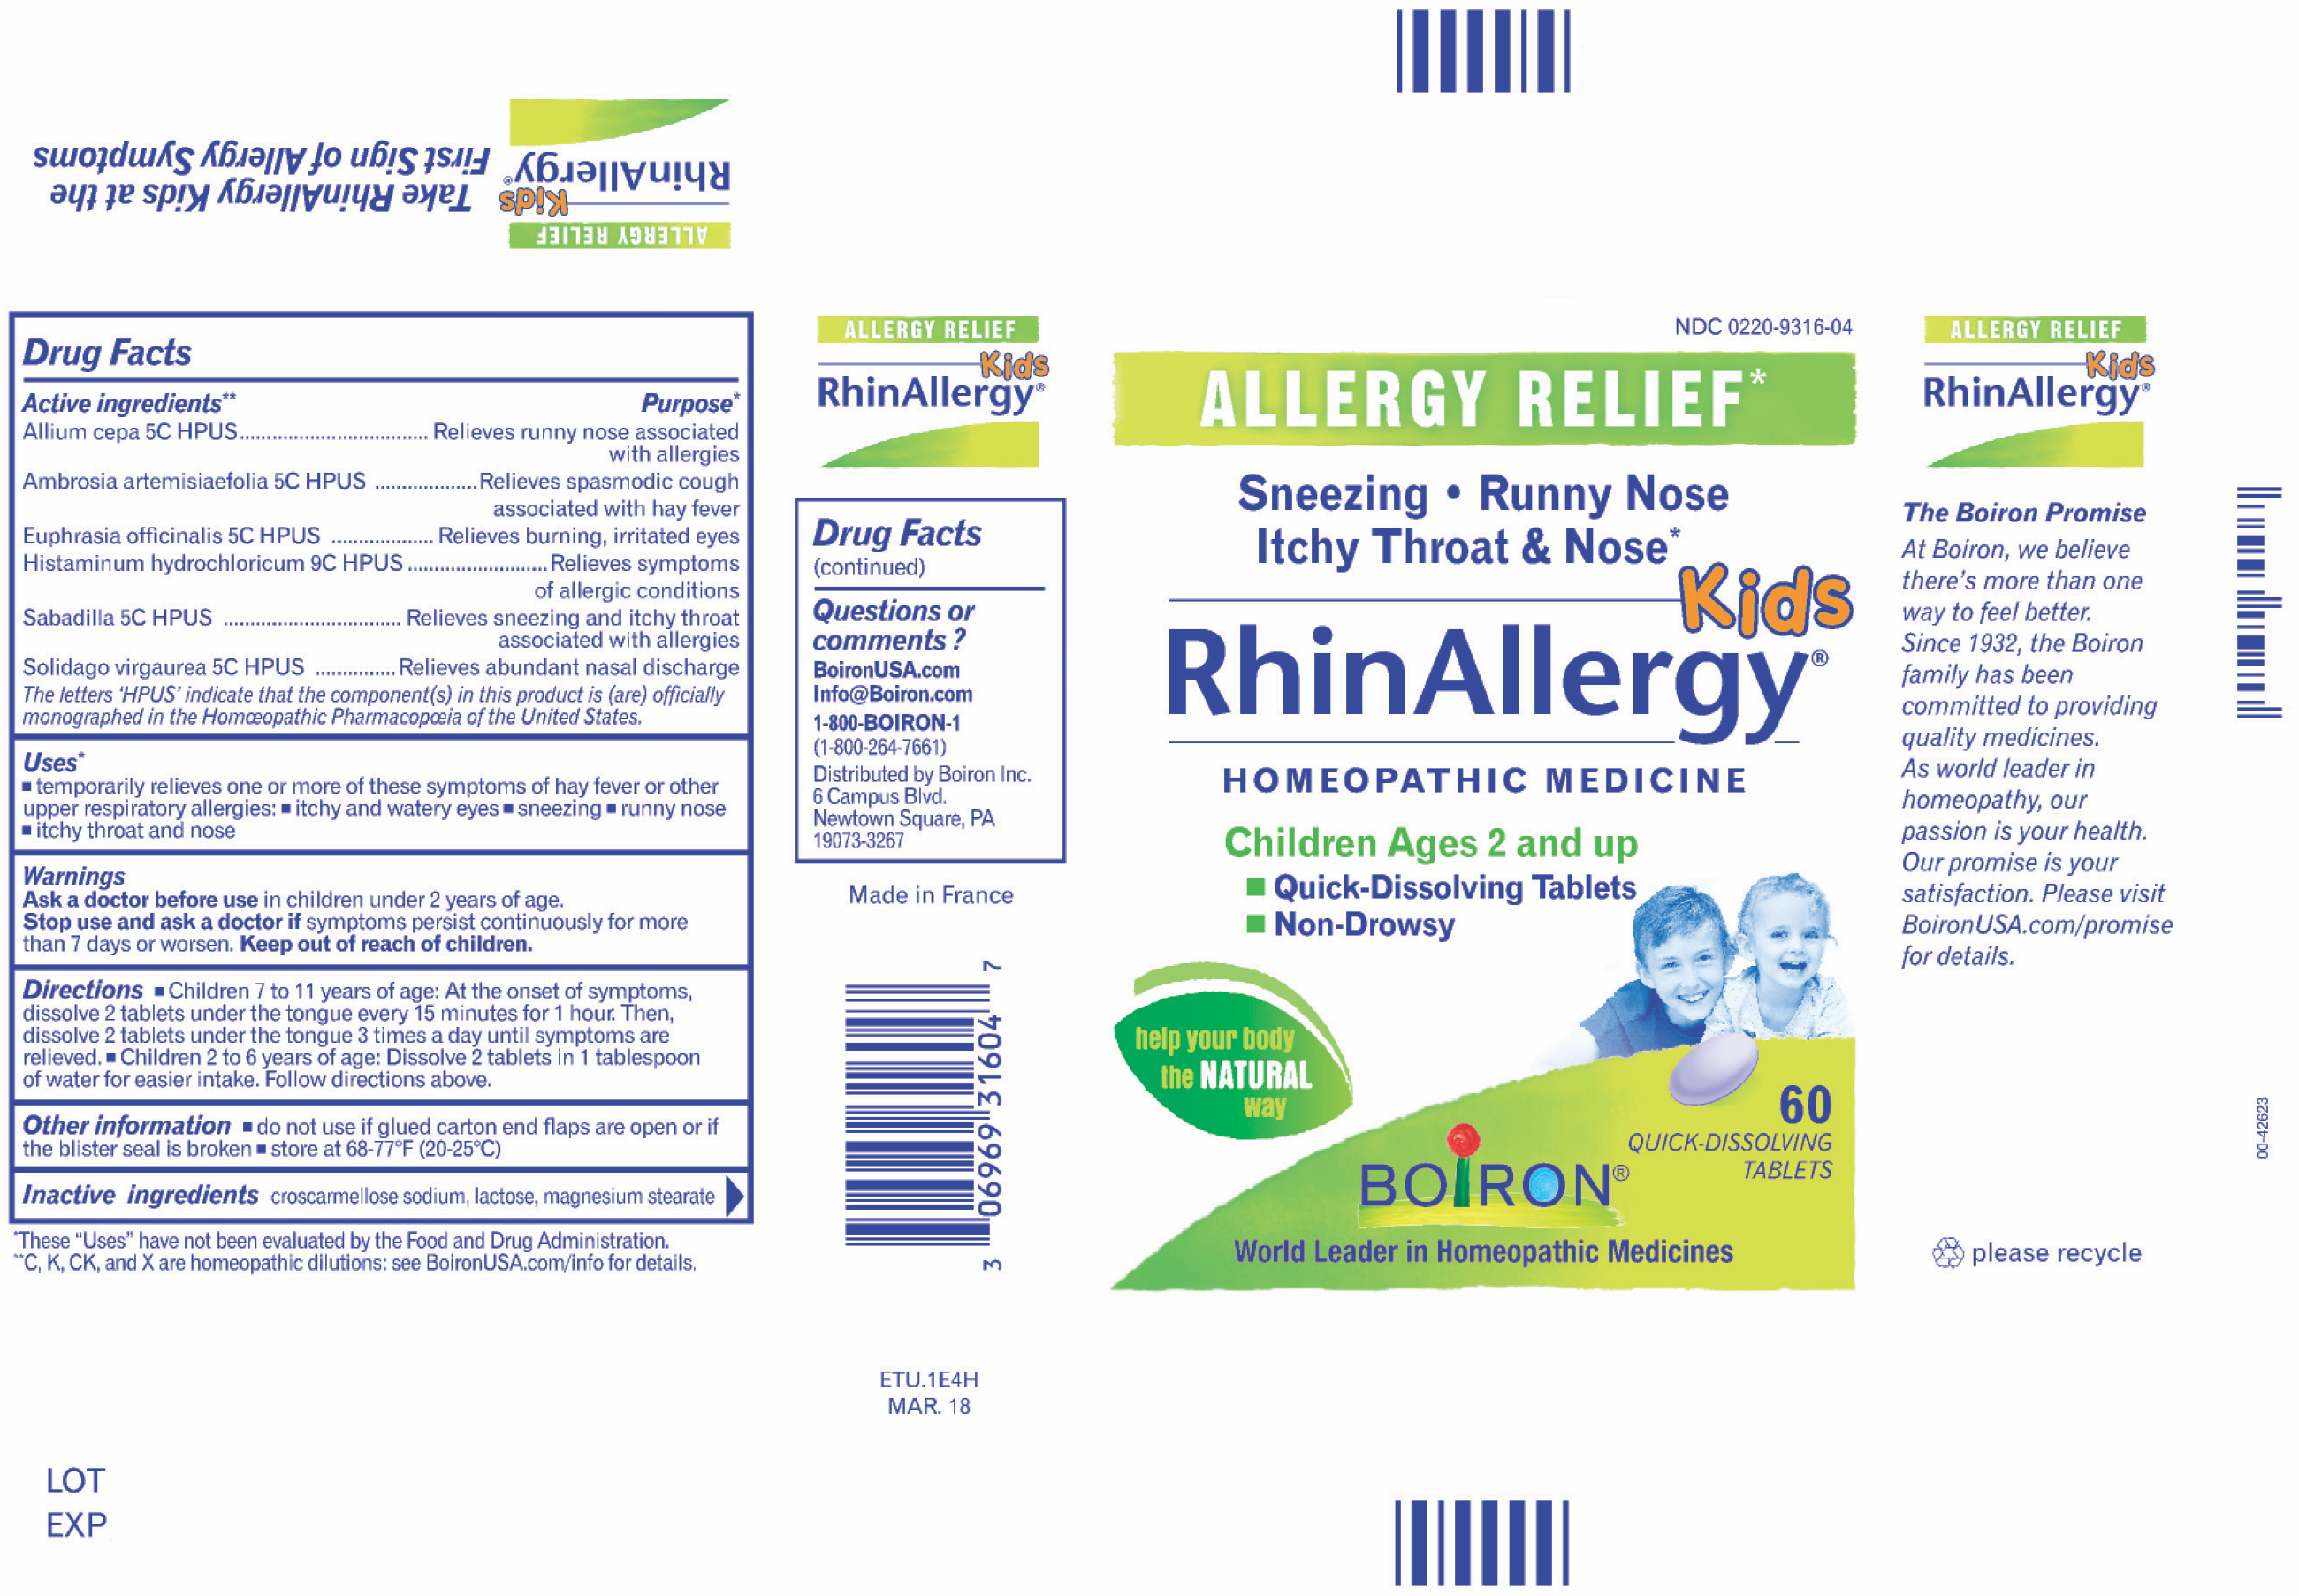 Kids Rhinallergy Homeopathic Medicine | The Natural Products Brands